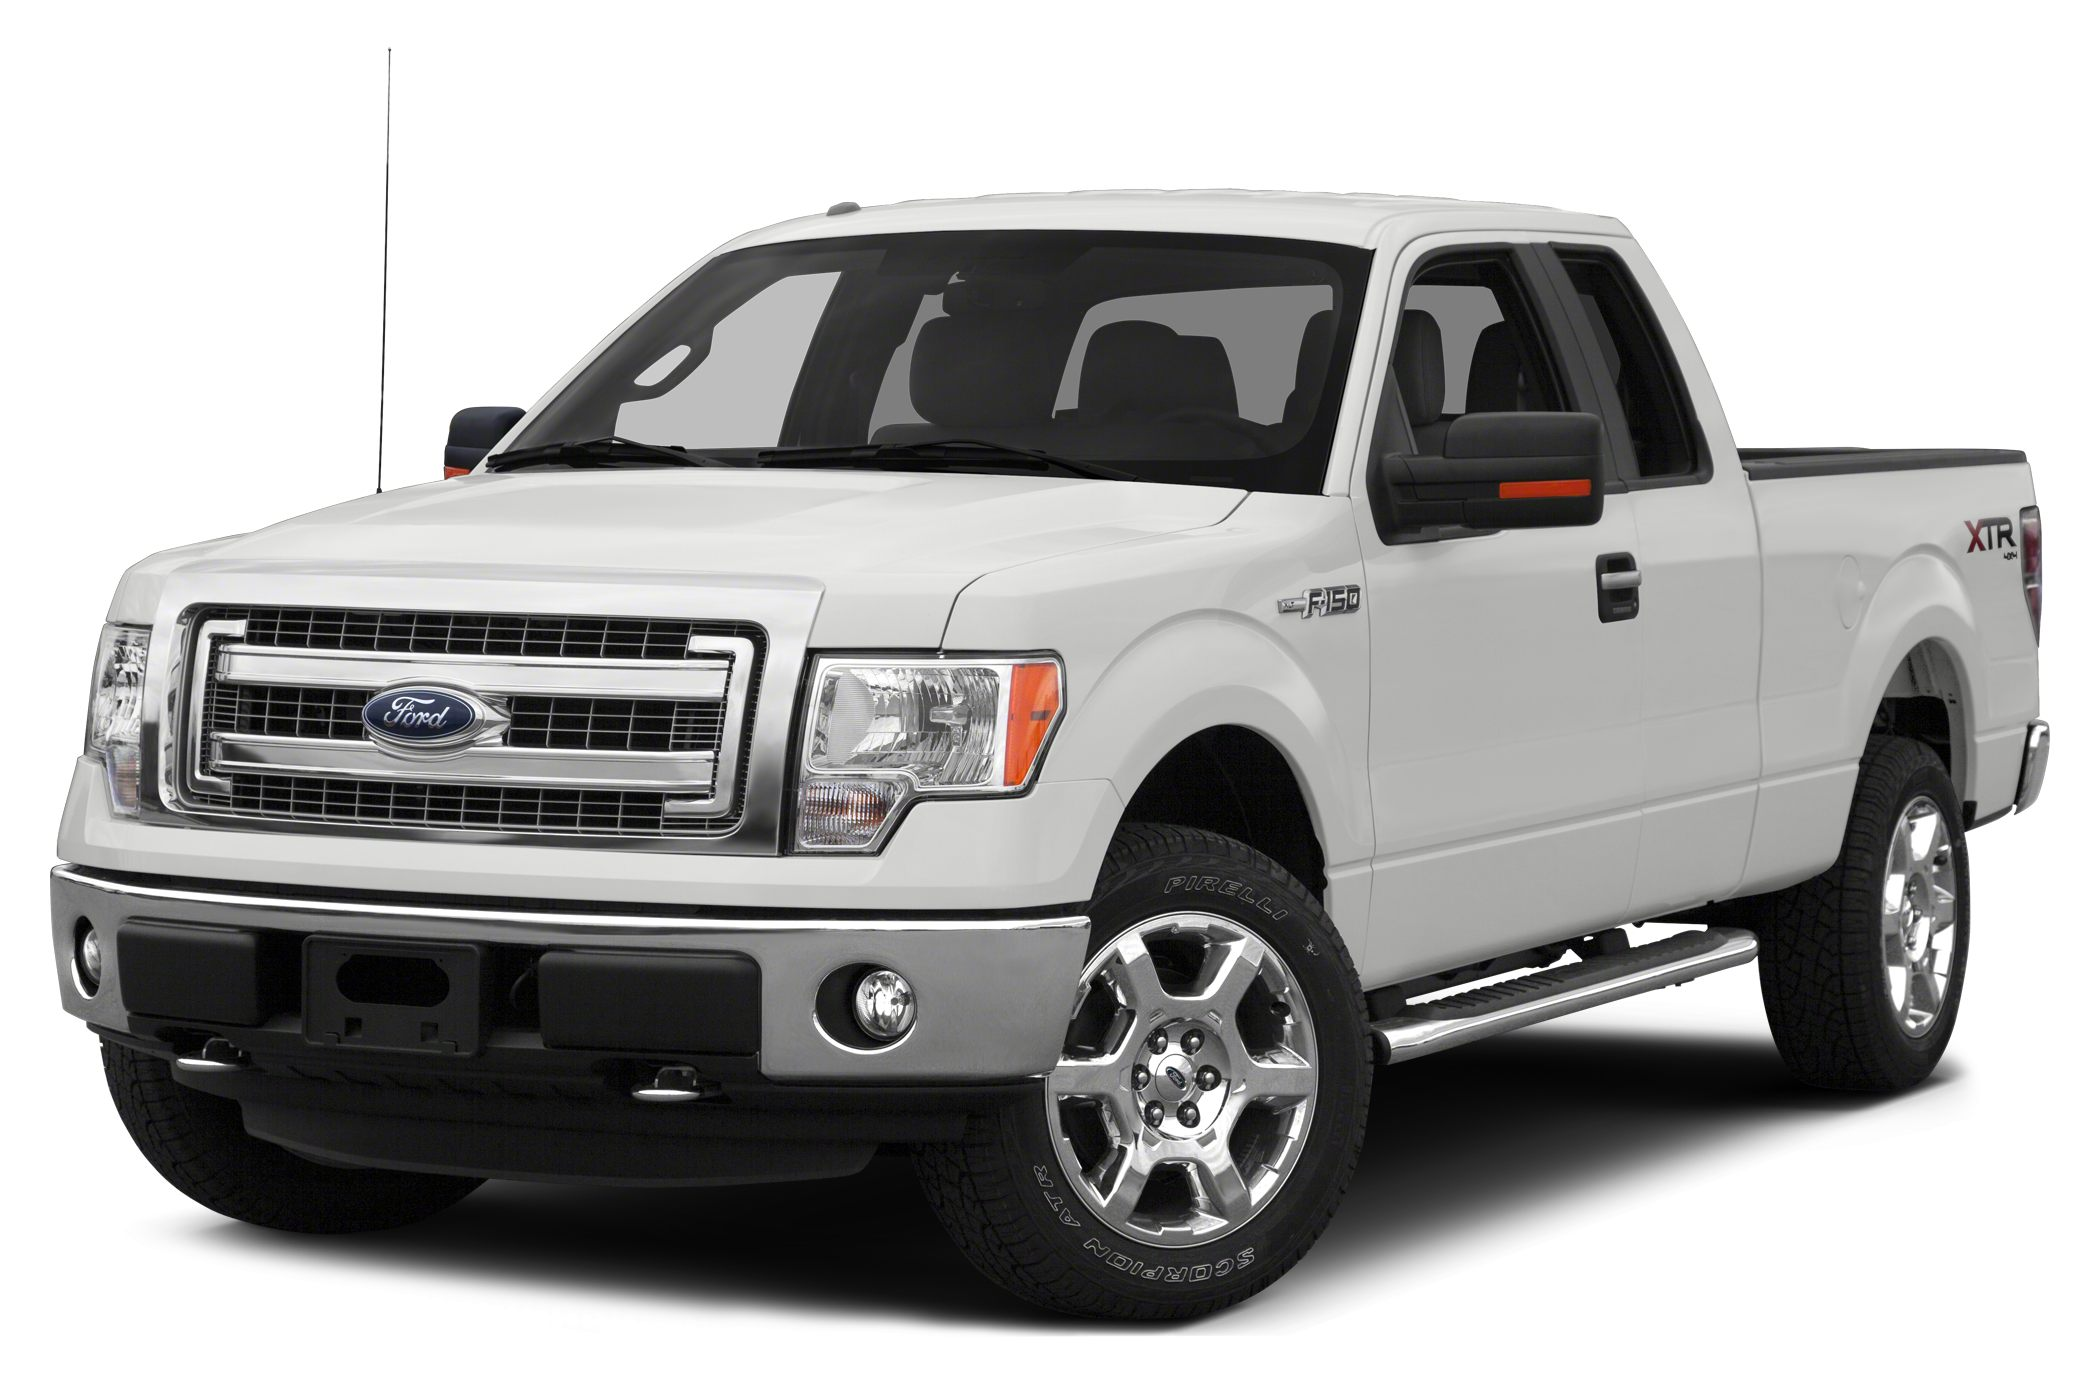 2014 Ford F150 Lariat Crew Cab Pickup for sale in Jefferson City for $52,340 with 11 miles